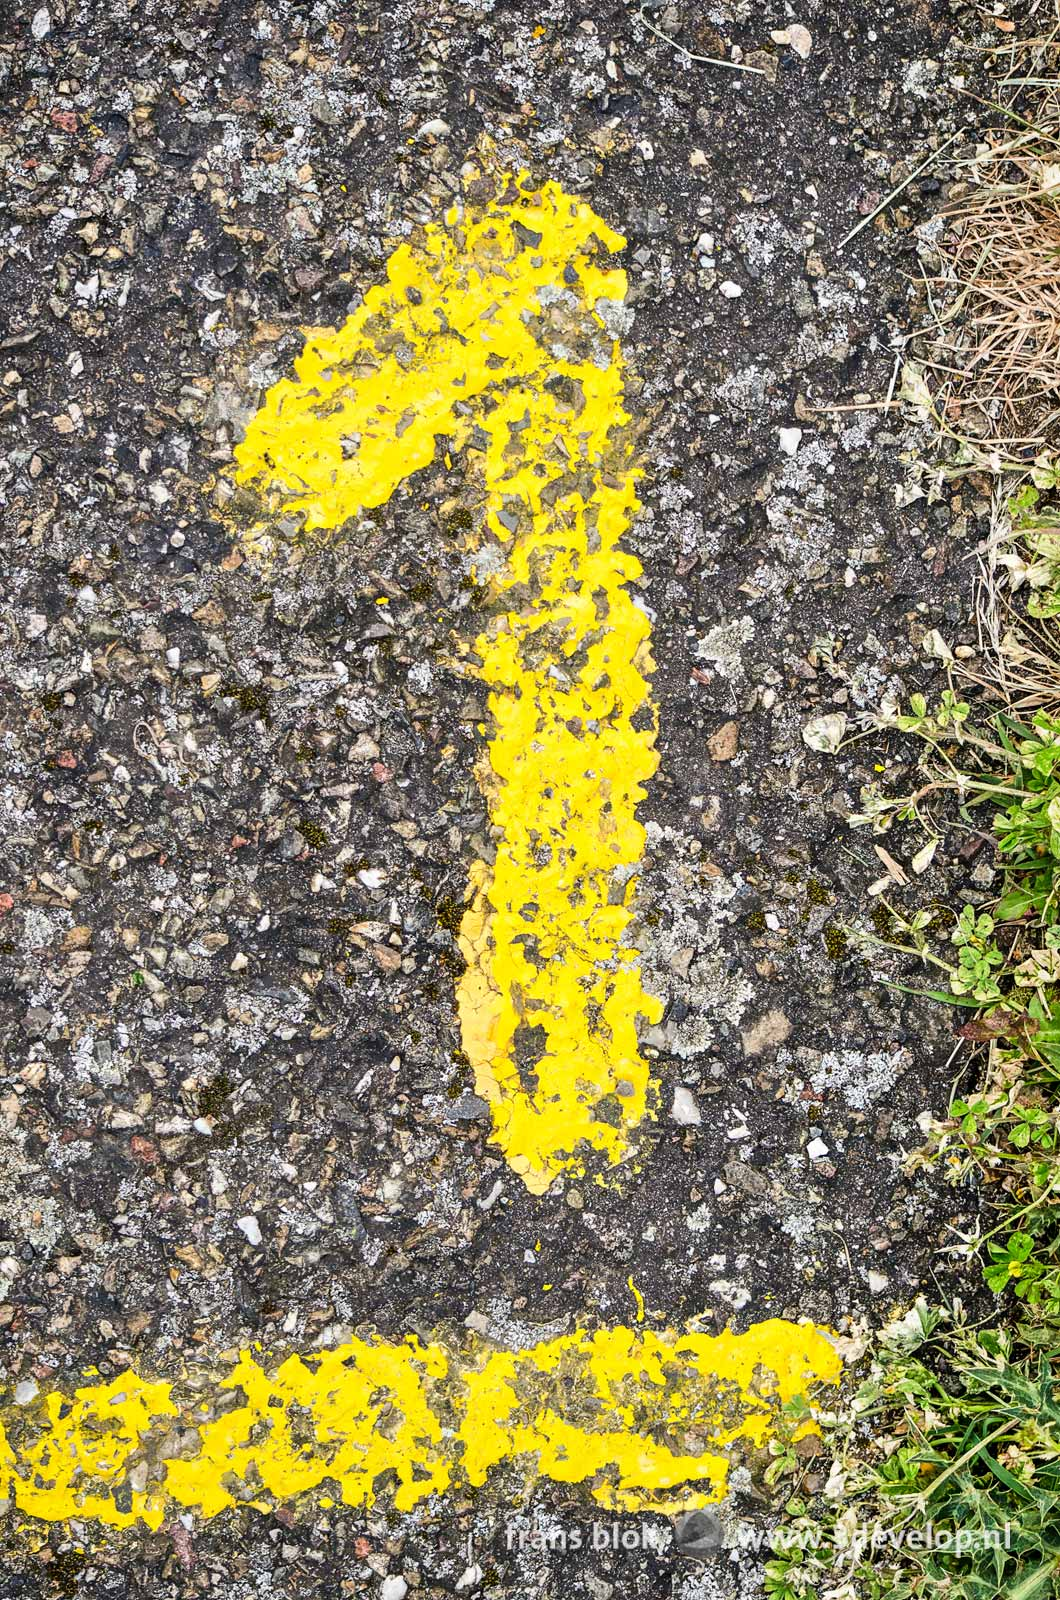 The number 1, painted on asphalt with yellow paint